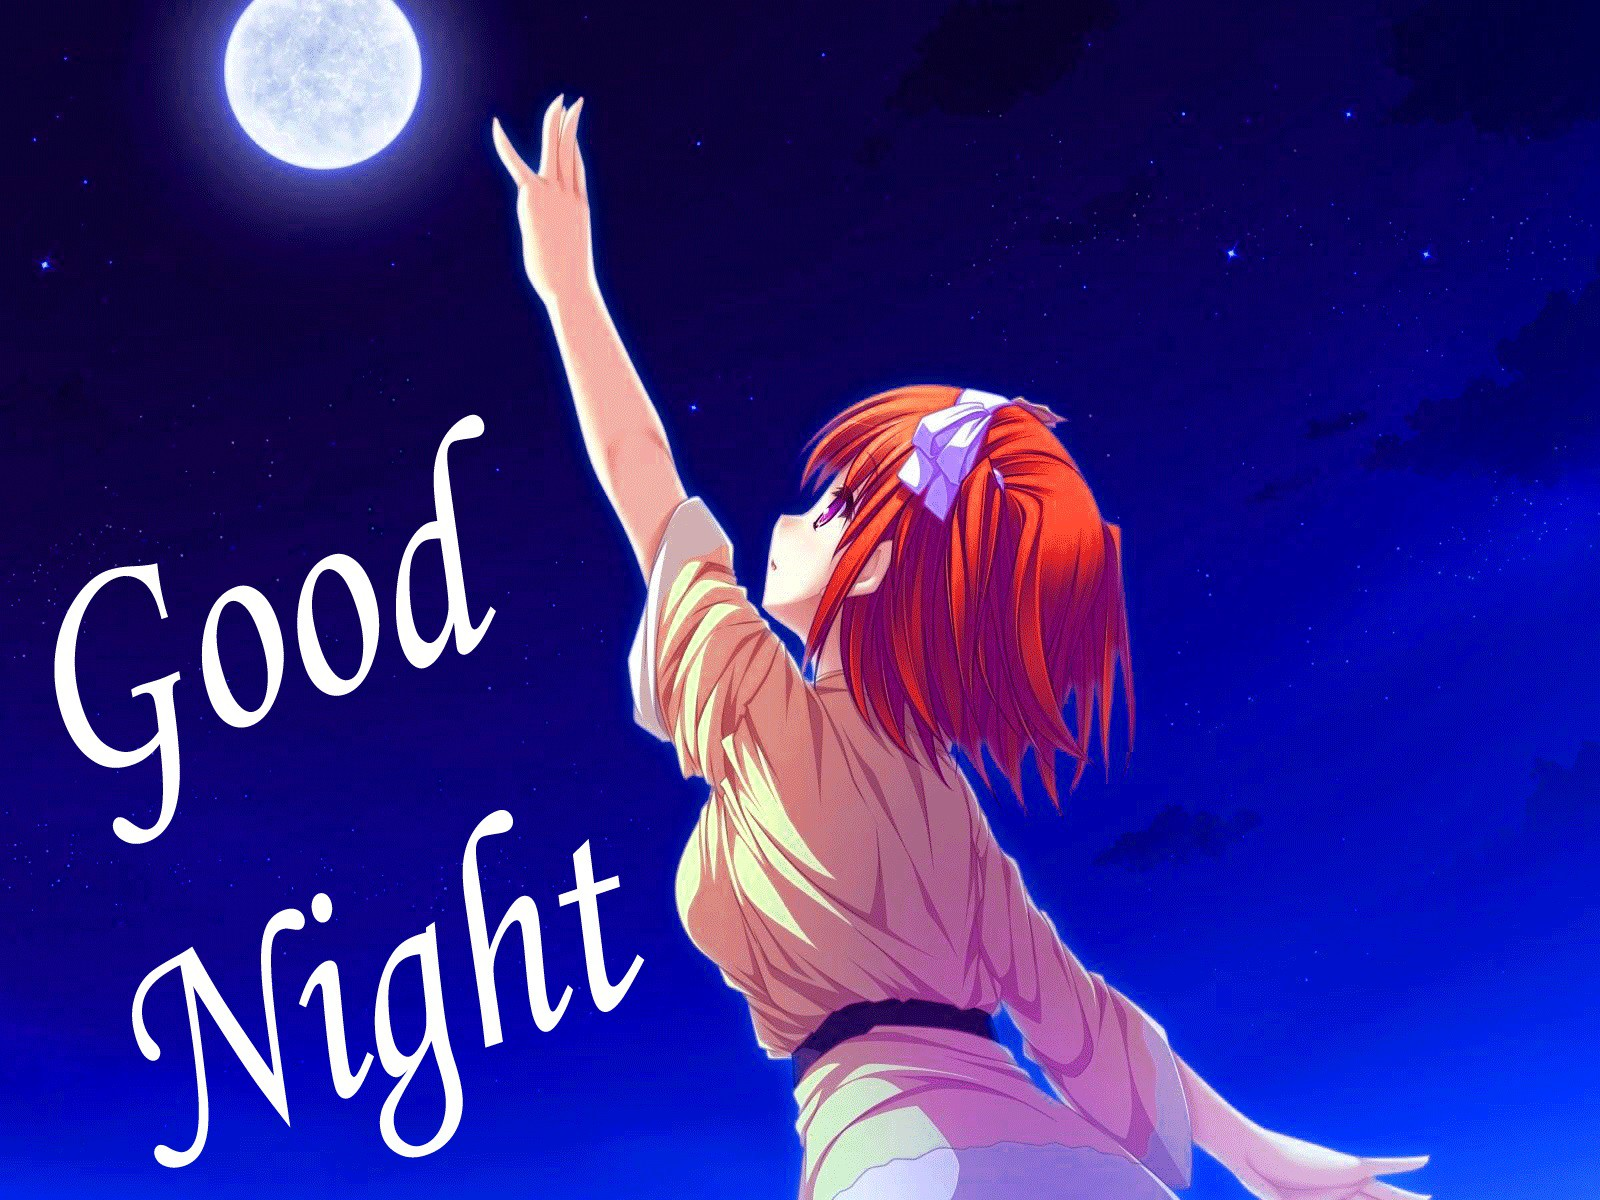 Image of good night moon image with cute girl